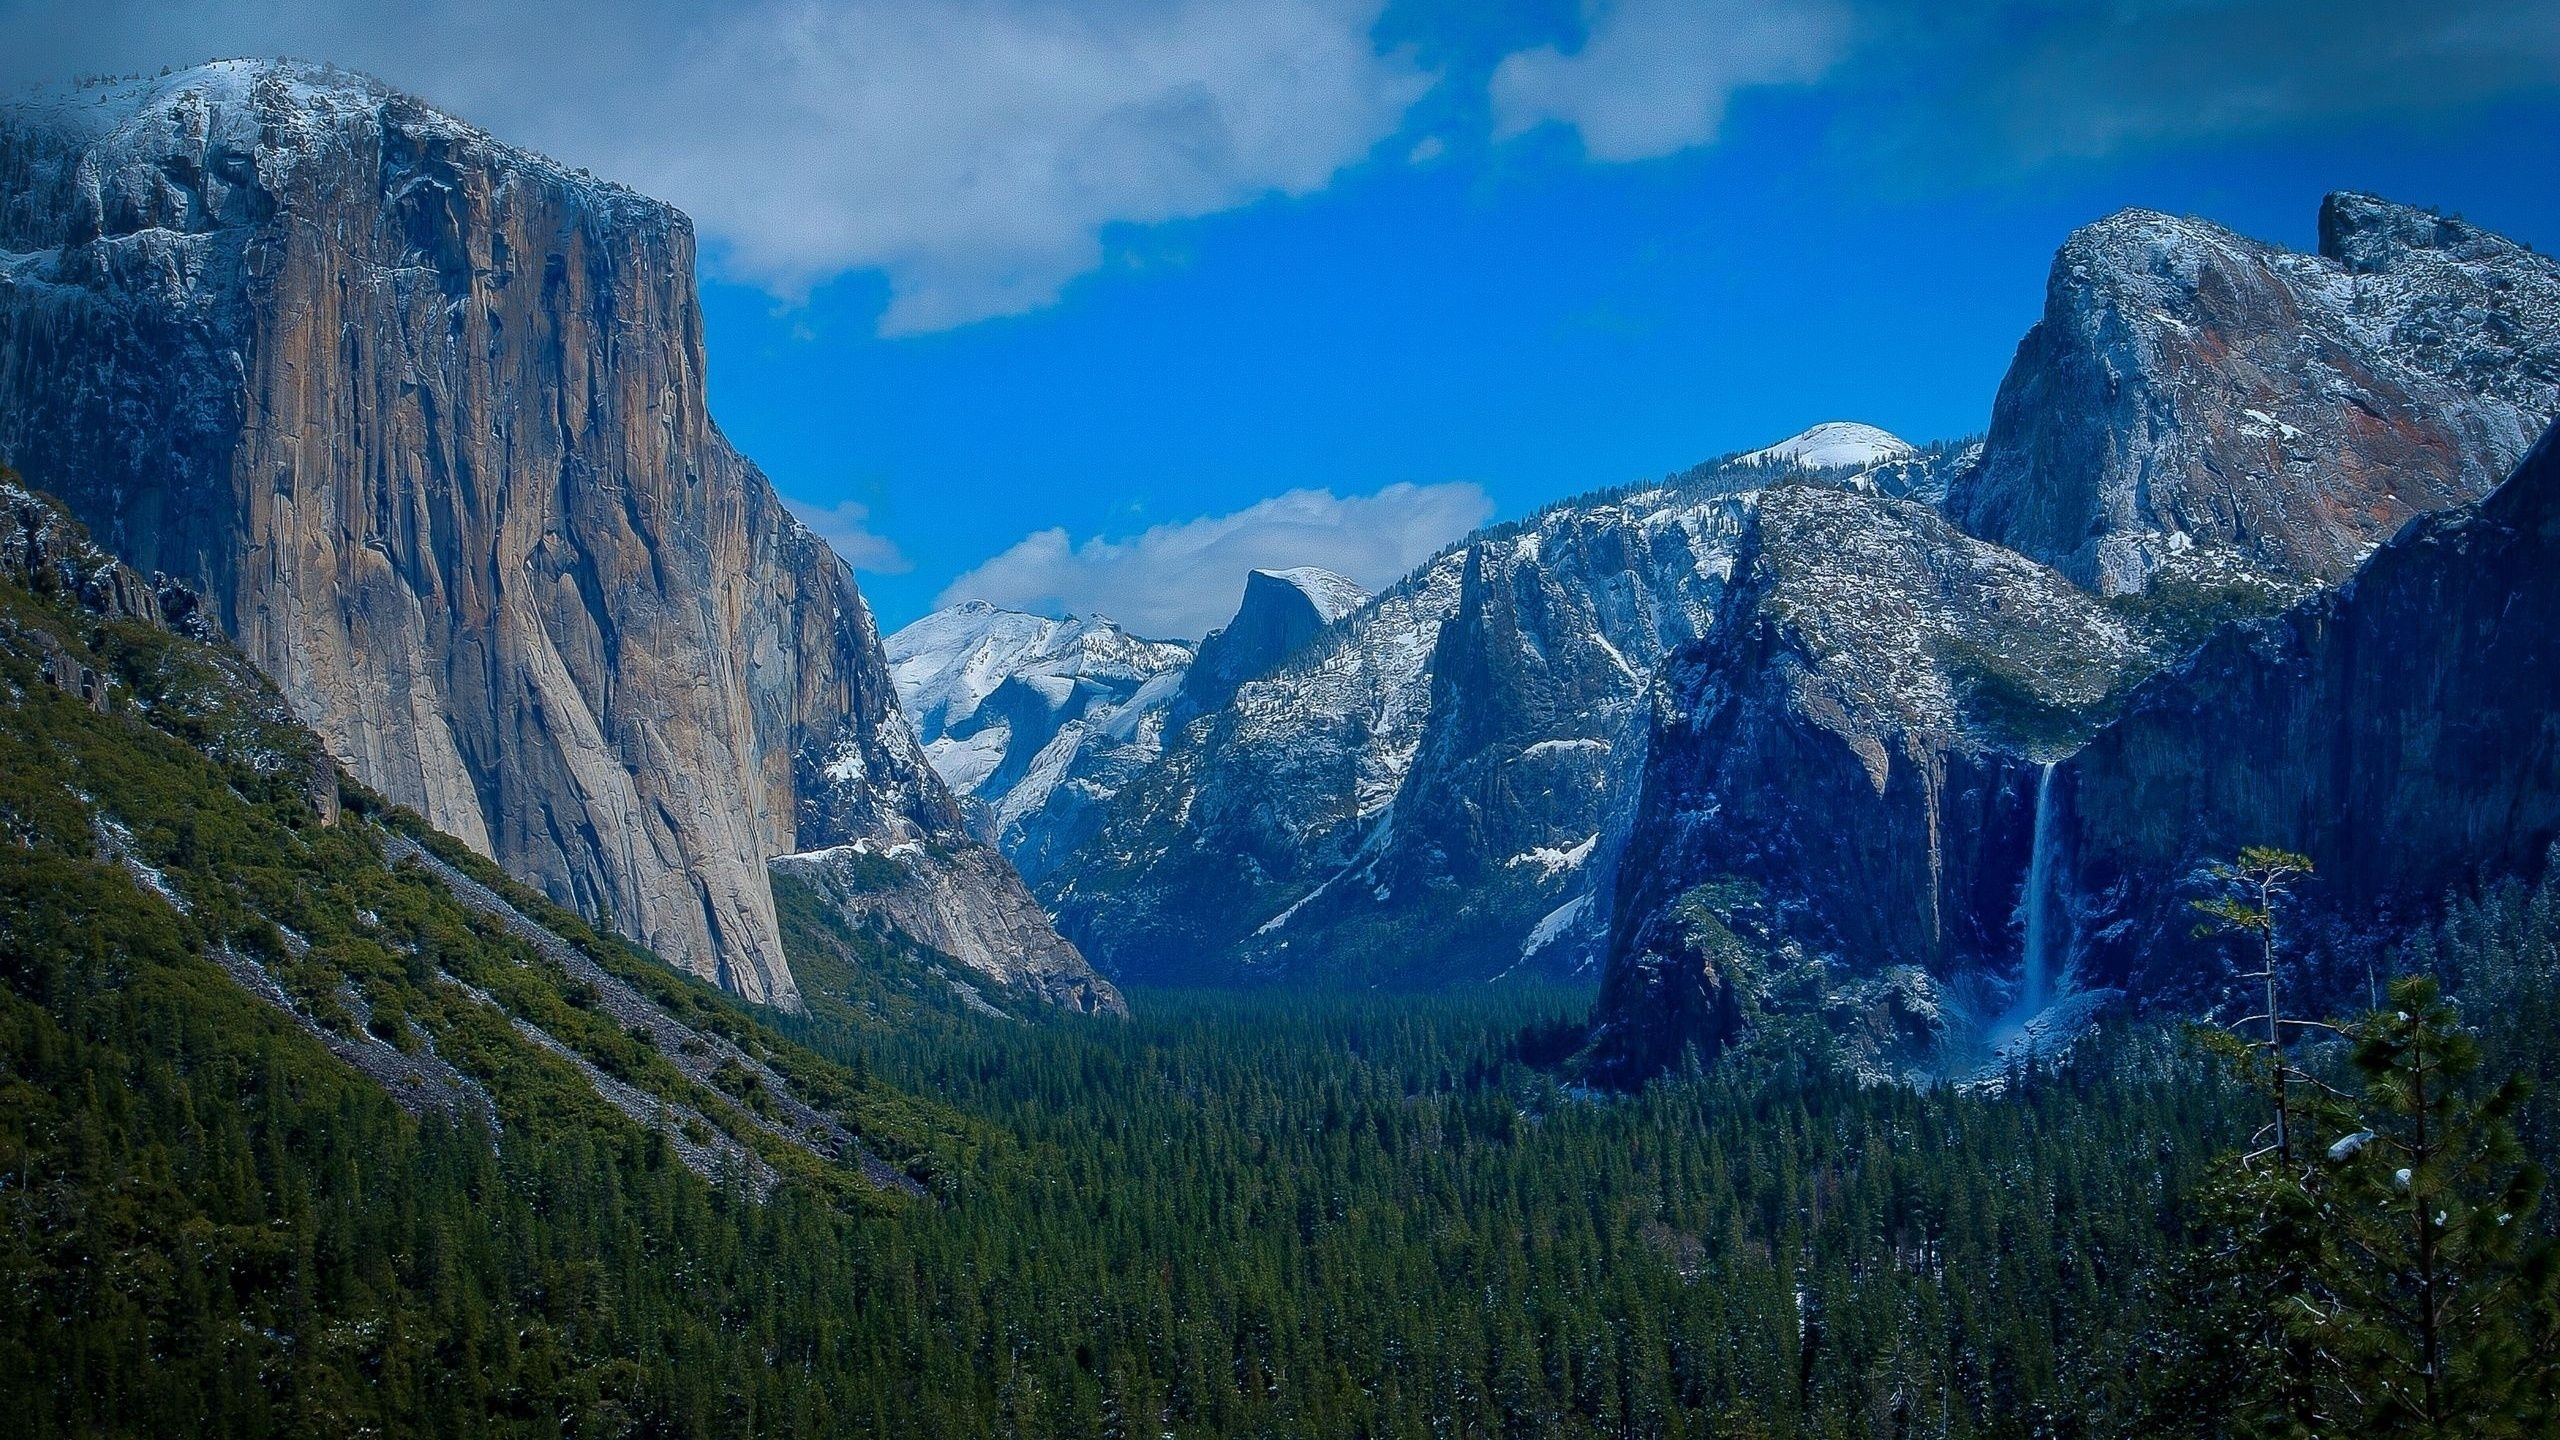 yosemite national park wallpapers and background images - stmed